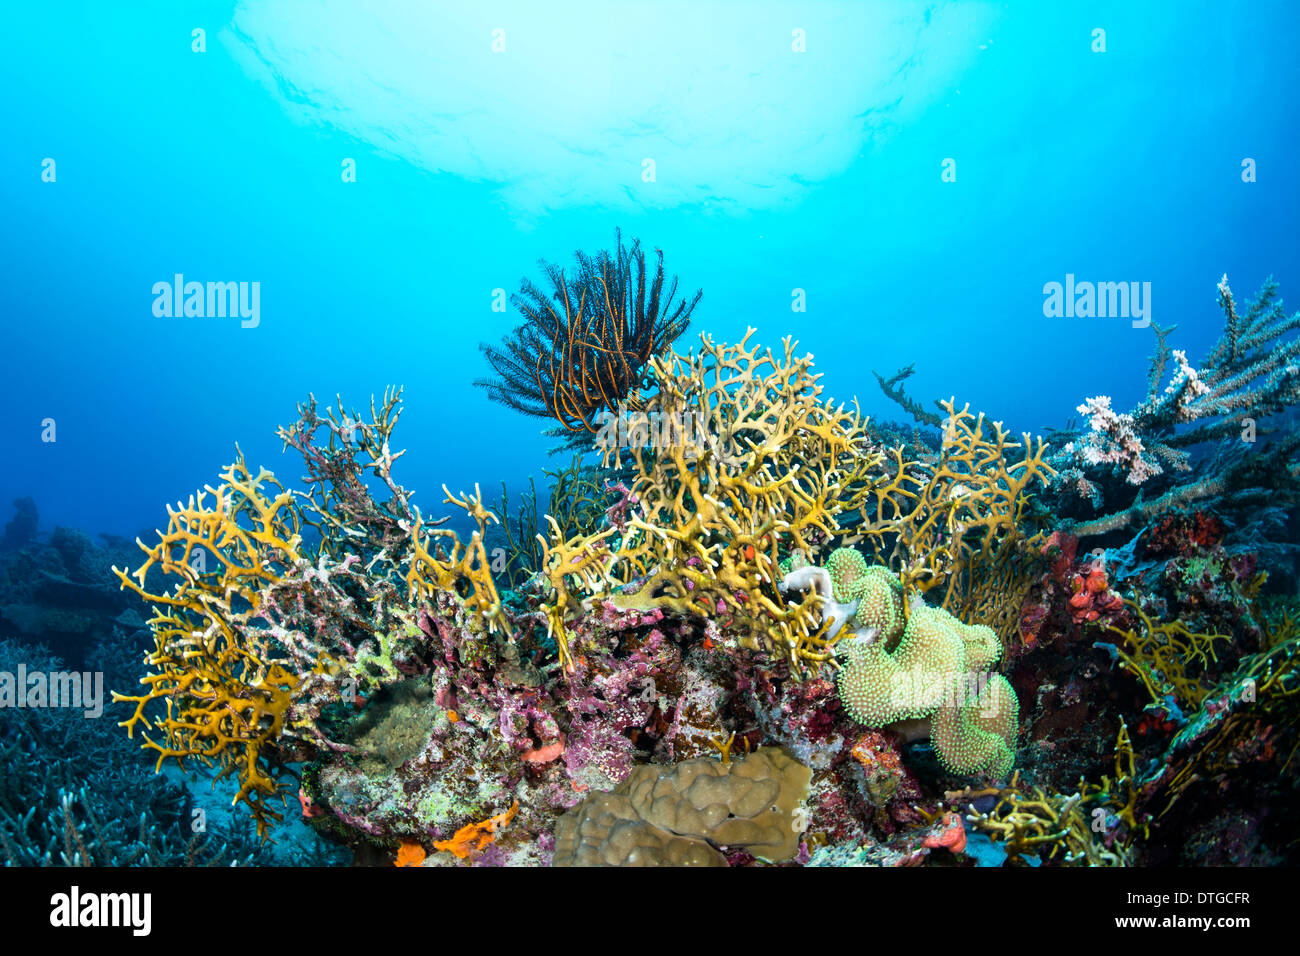 Dangerous fire coral lines a tropical reef in Fiji while a crinoid feeds on plankton suspended in the water column. - Stock Image